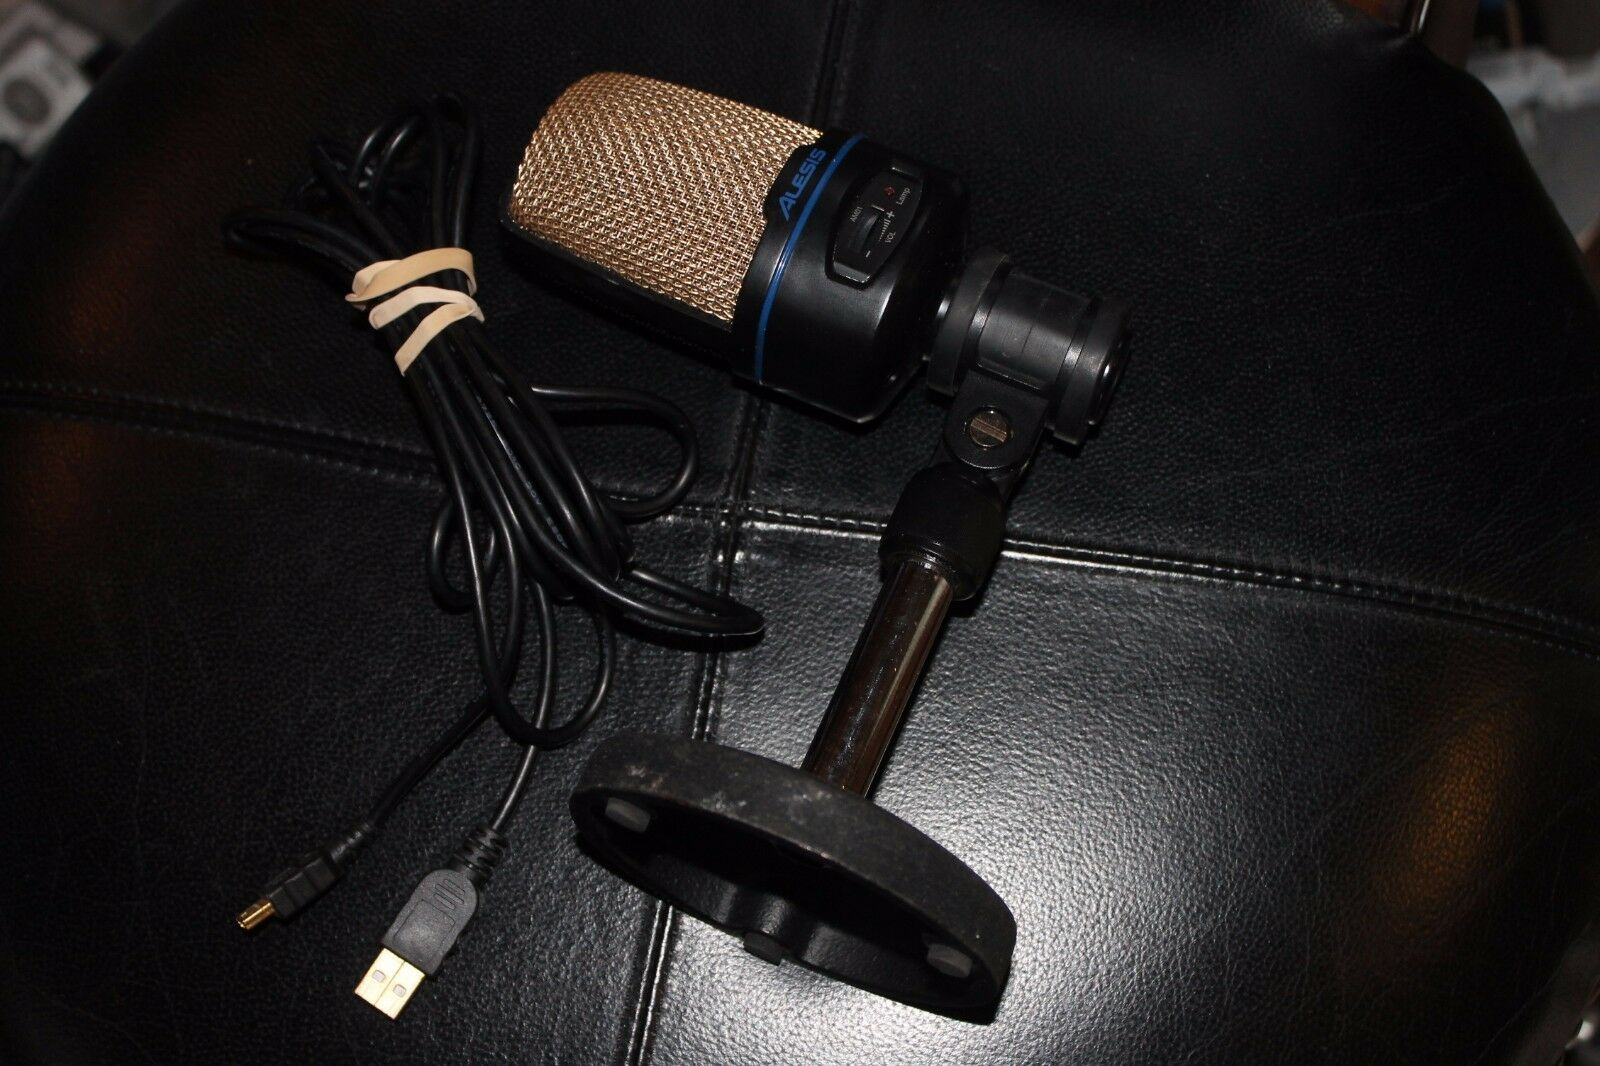 Alesis USB Podcast Microphone w extra long USB cord